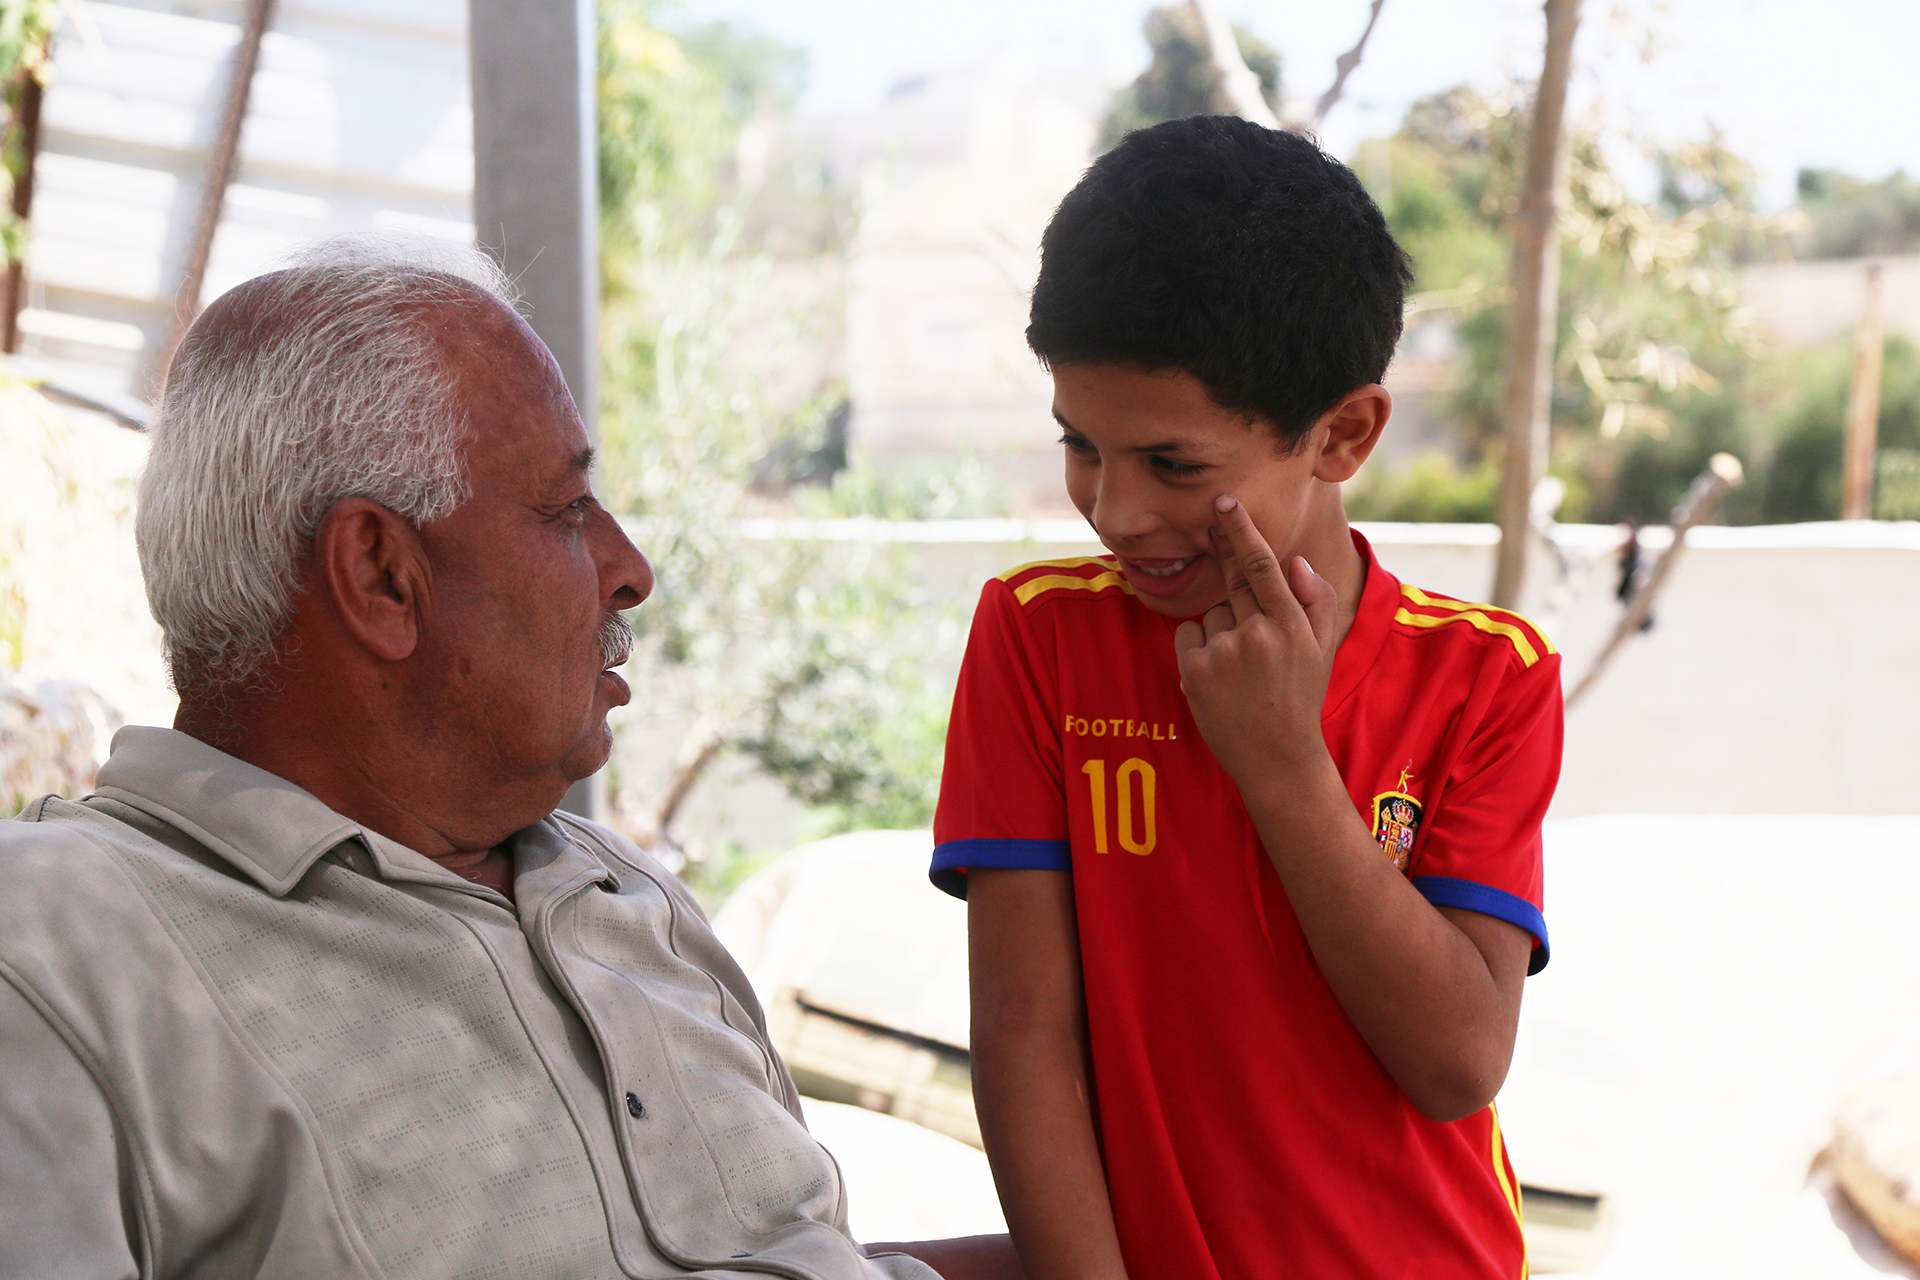 Ayham, the youngest child in the Fawaka family, plays with his father. (Photo: DCIP / Ivan Karakashian)